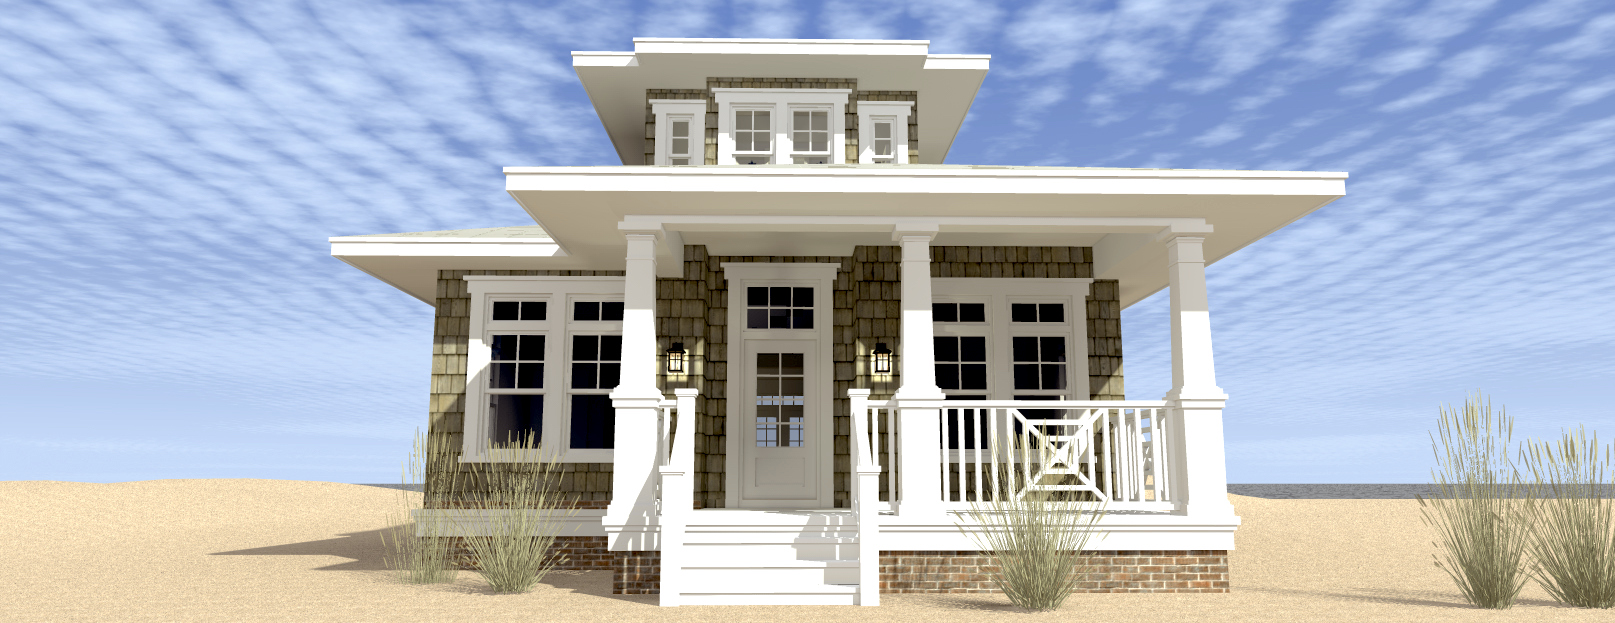 Shoreline house plan tyree house plans for Craftsman beach house plans